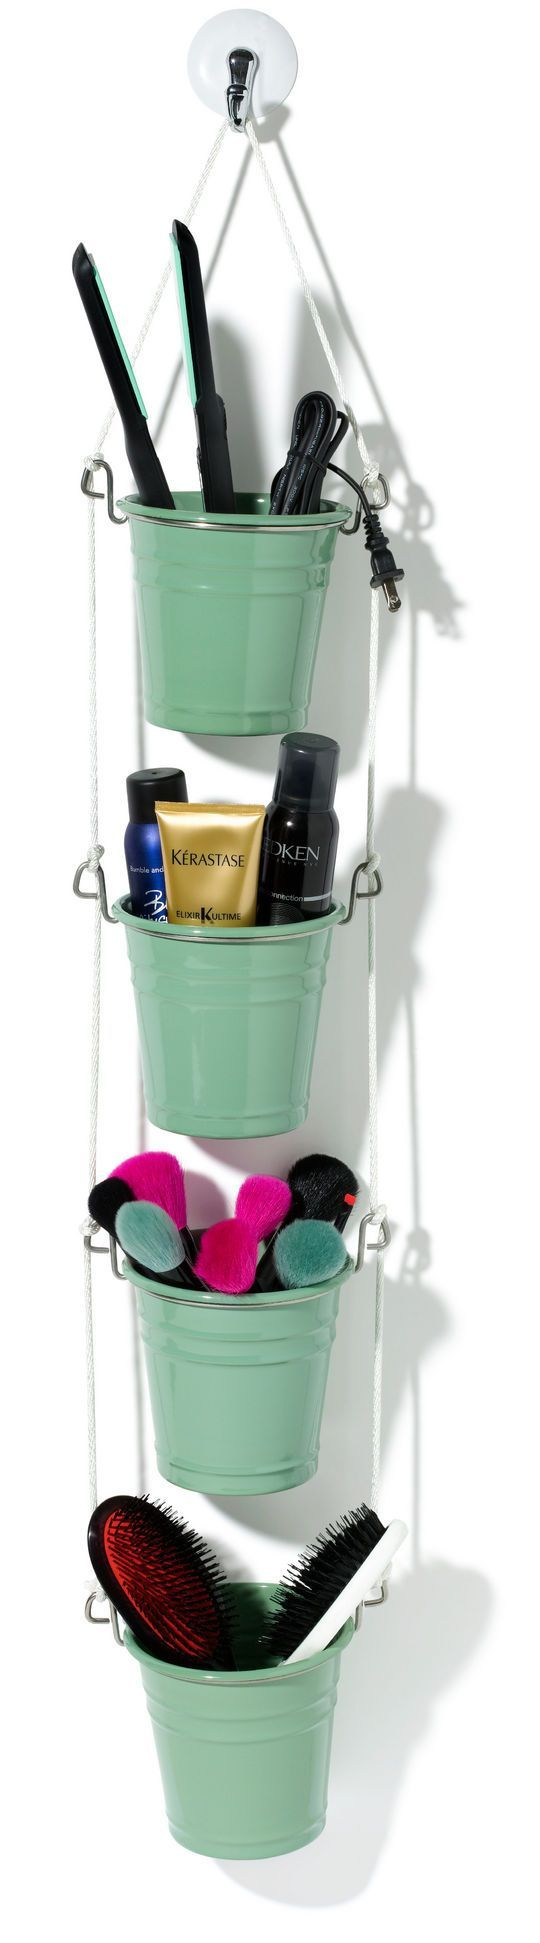 8 Clever Ways to Organize with Ikea • A round-up full of ideas, projects and tutorials! Including, from 'glamour', this diy makeup storage unit made from Ikea Fintorp flatware caddies.